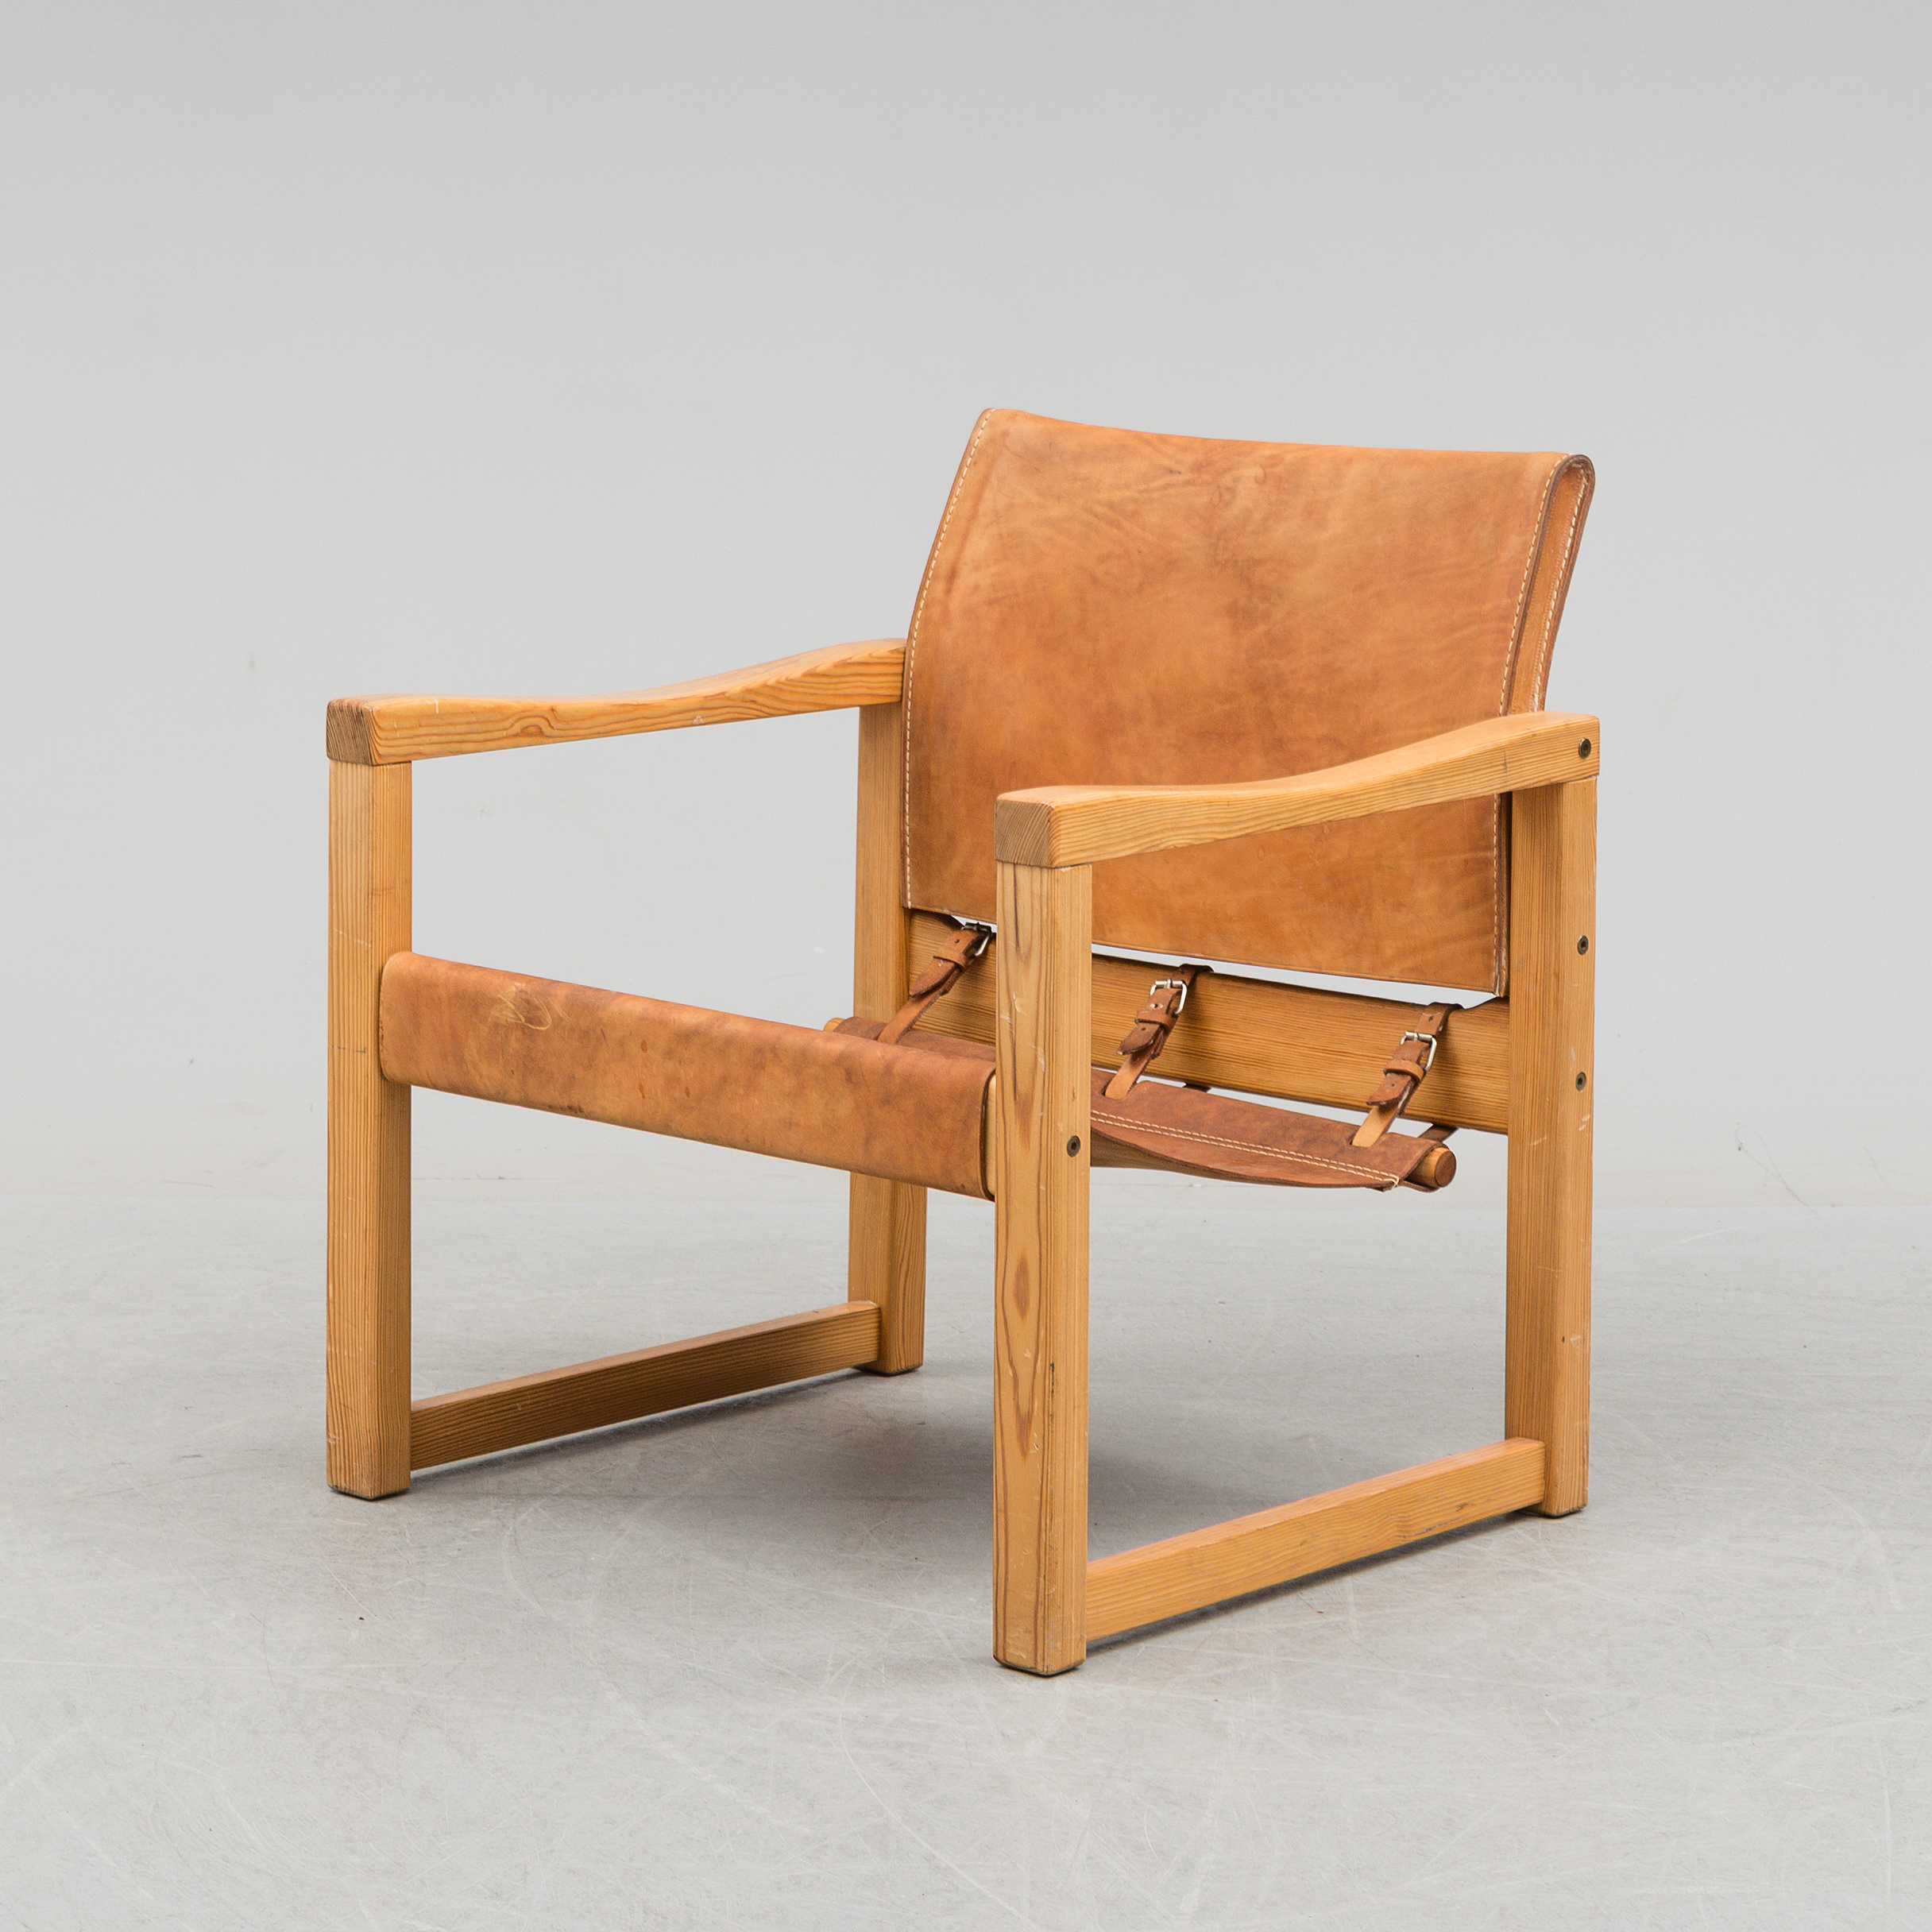 IKEA, A Leather And Pinewood Easy Chair By Karin Moberg, For IKEA, Late  20th Century.   Bukowskis